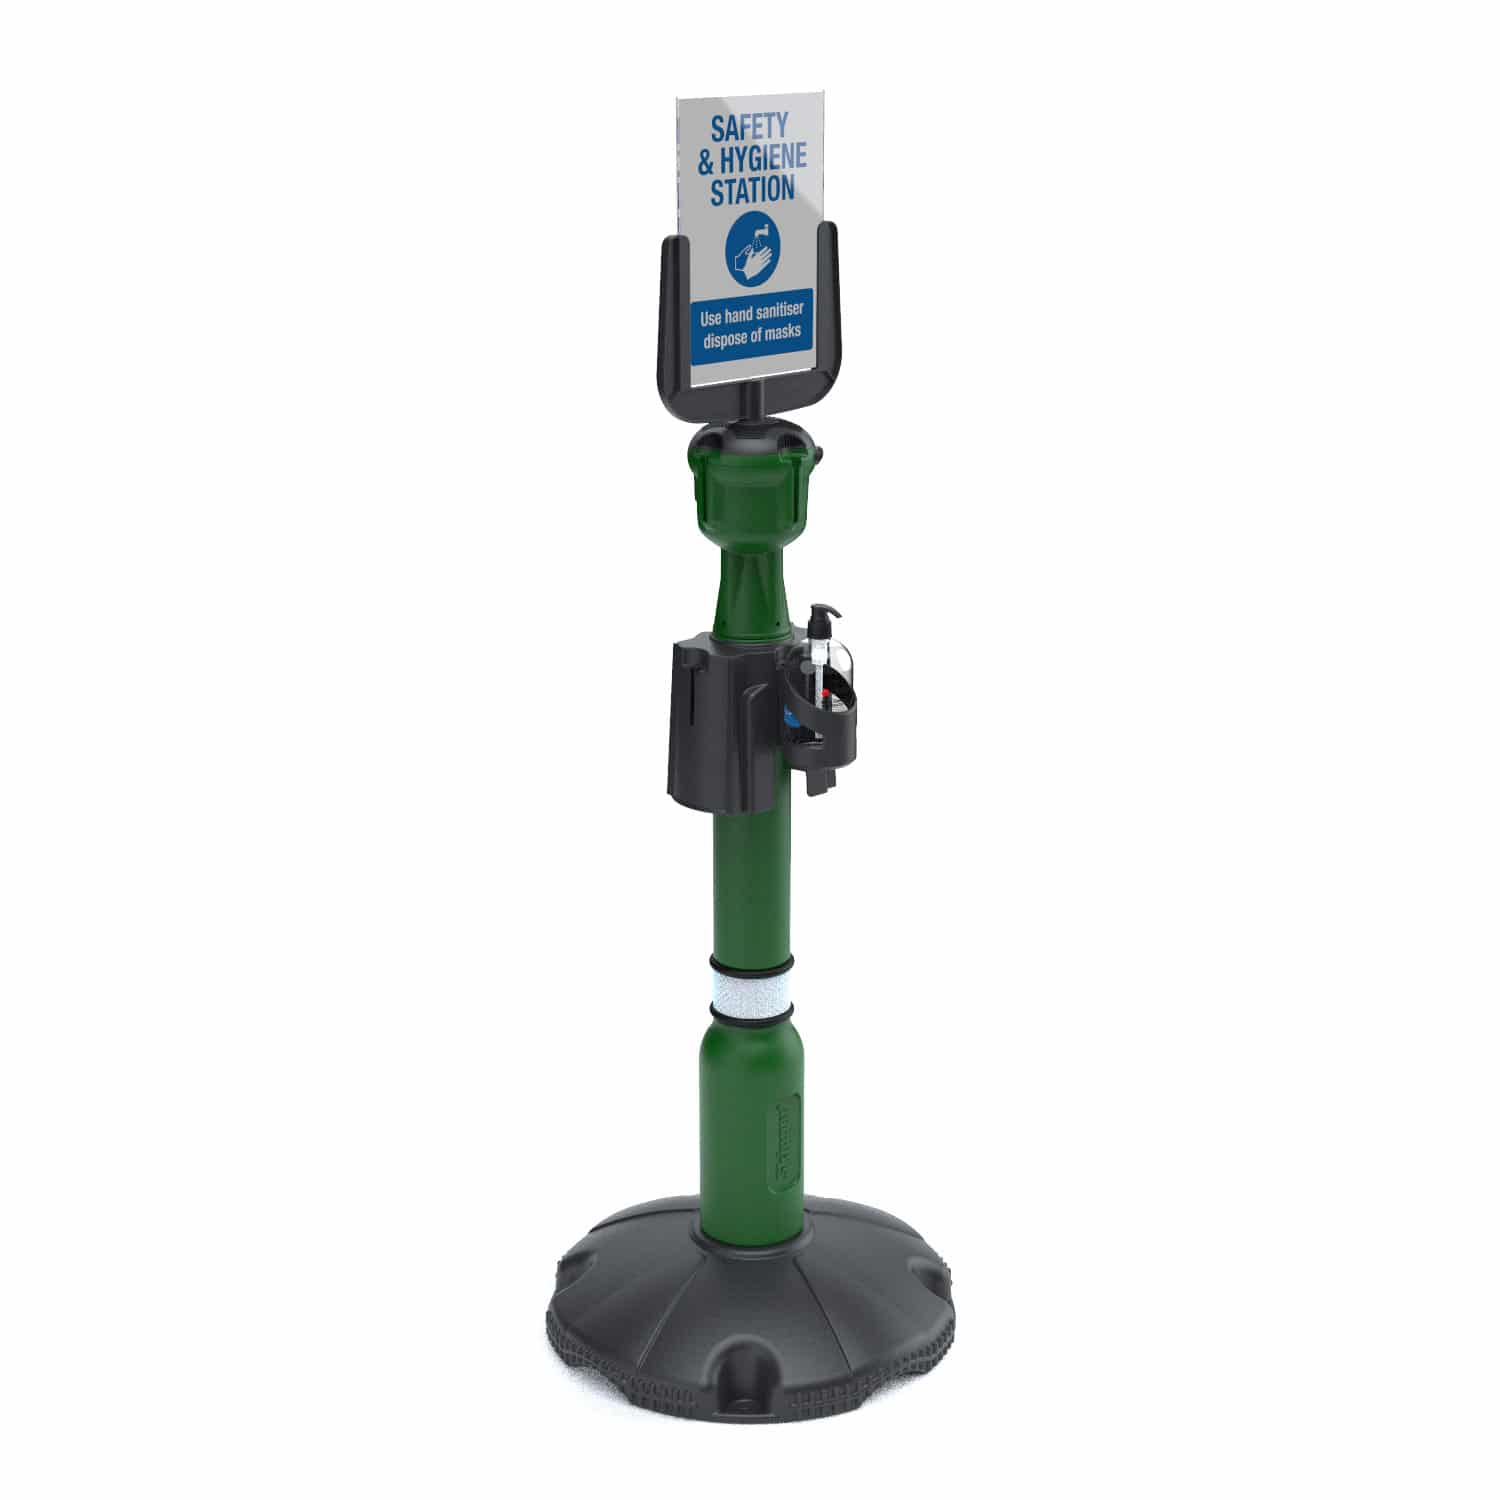 safety-station-6-green